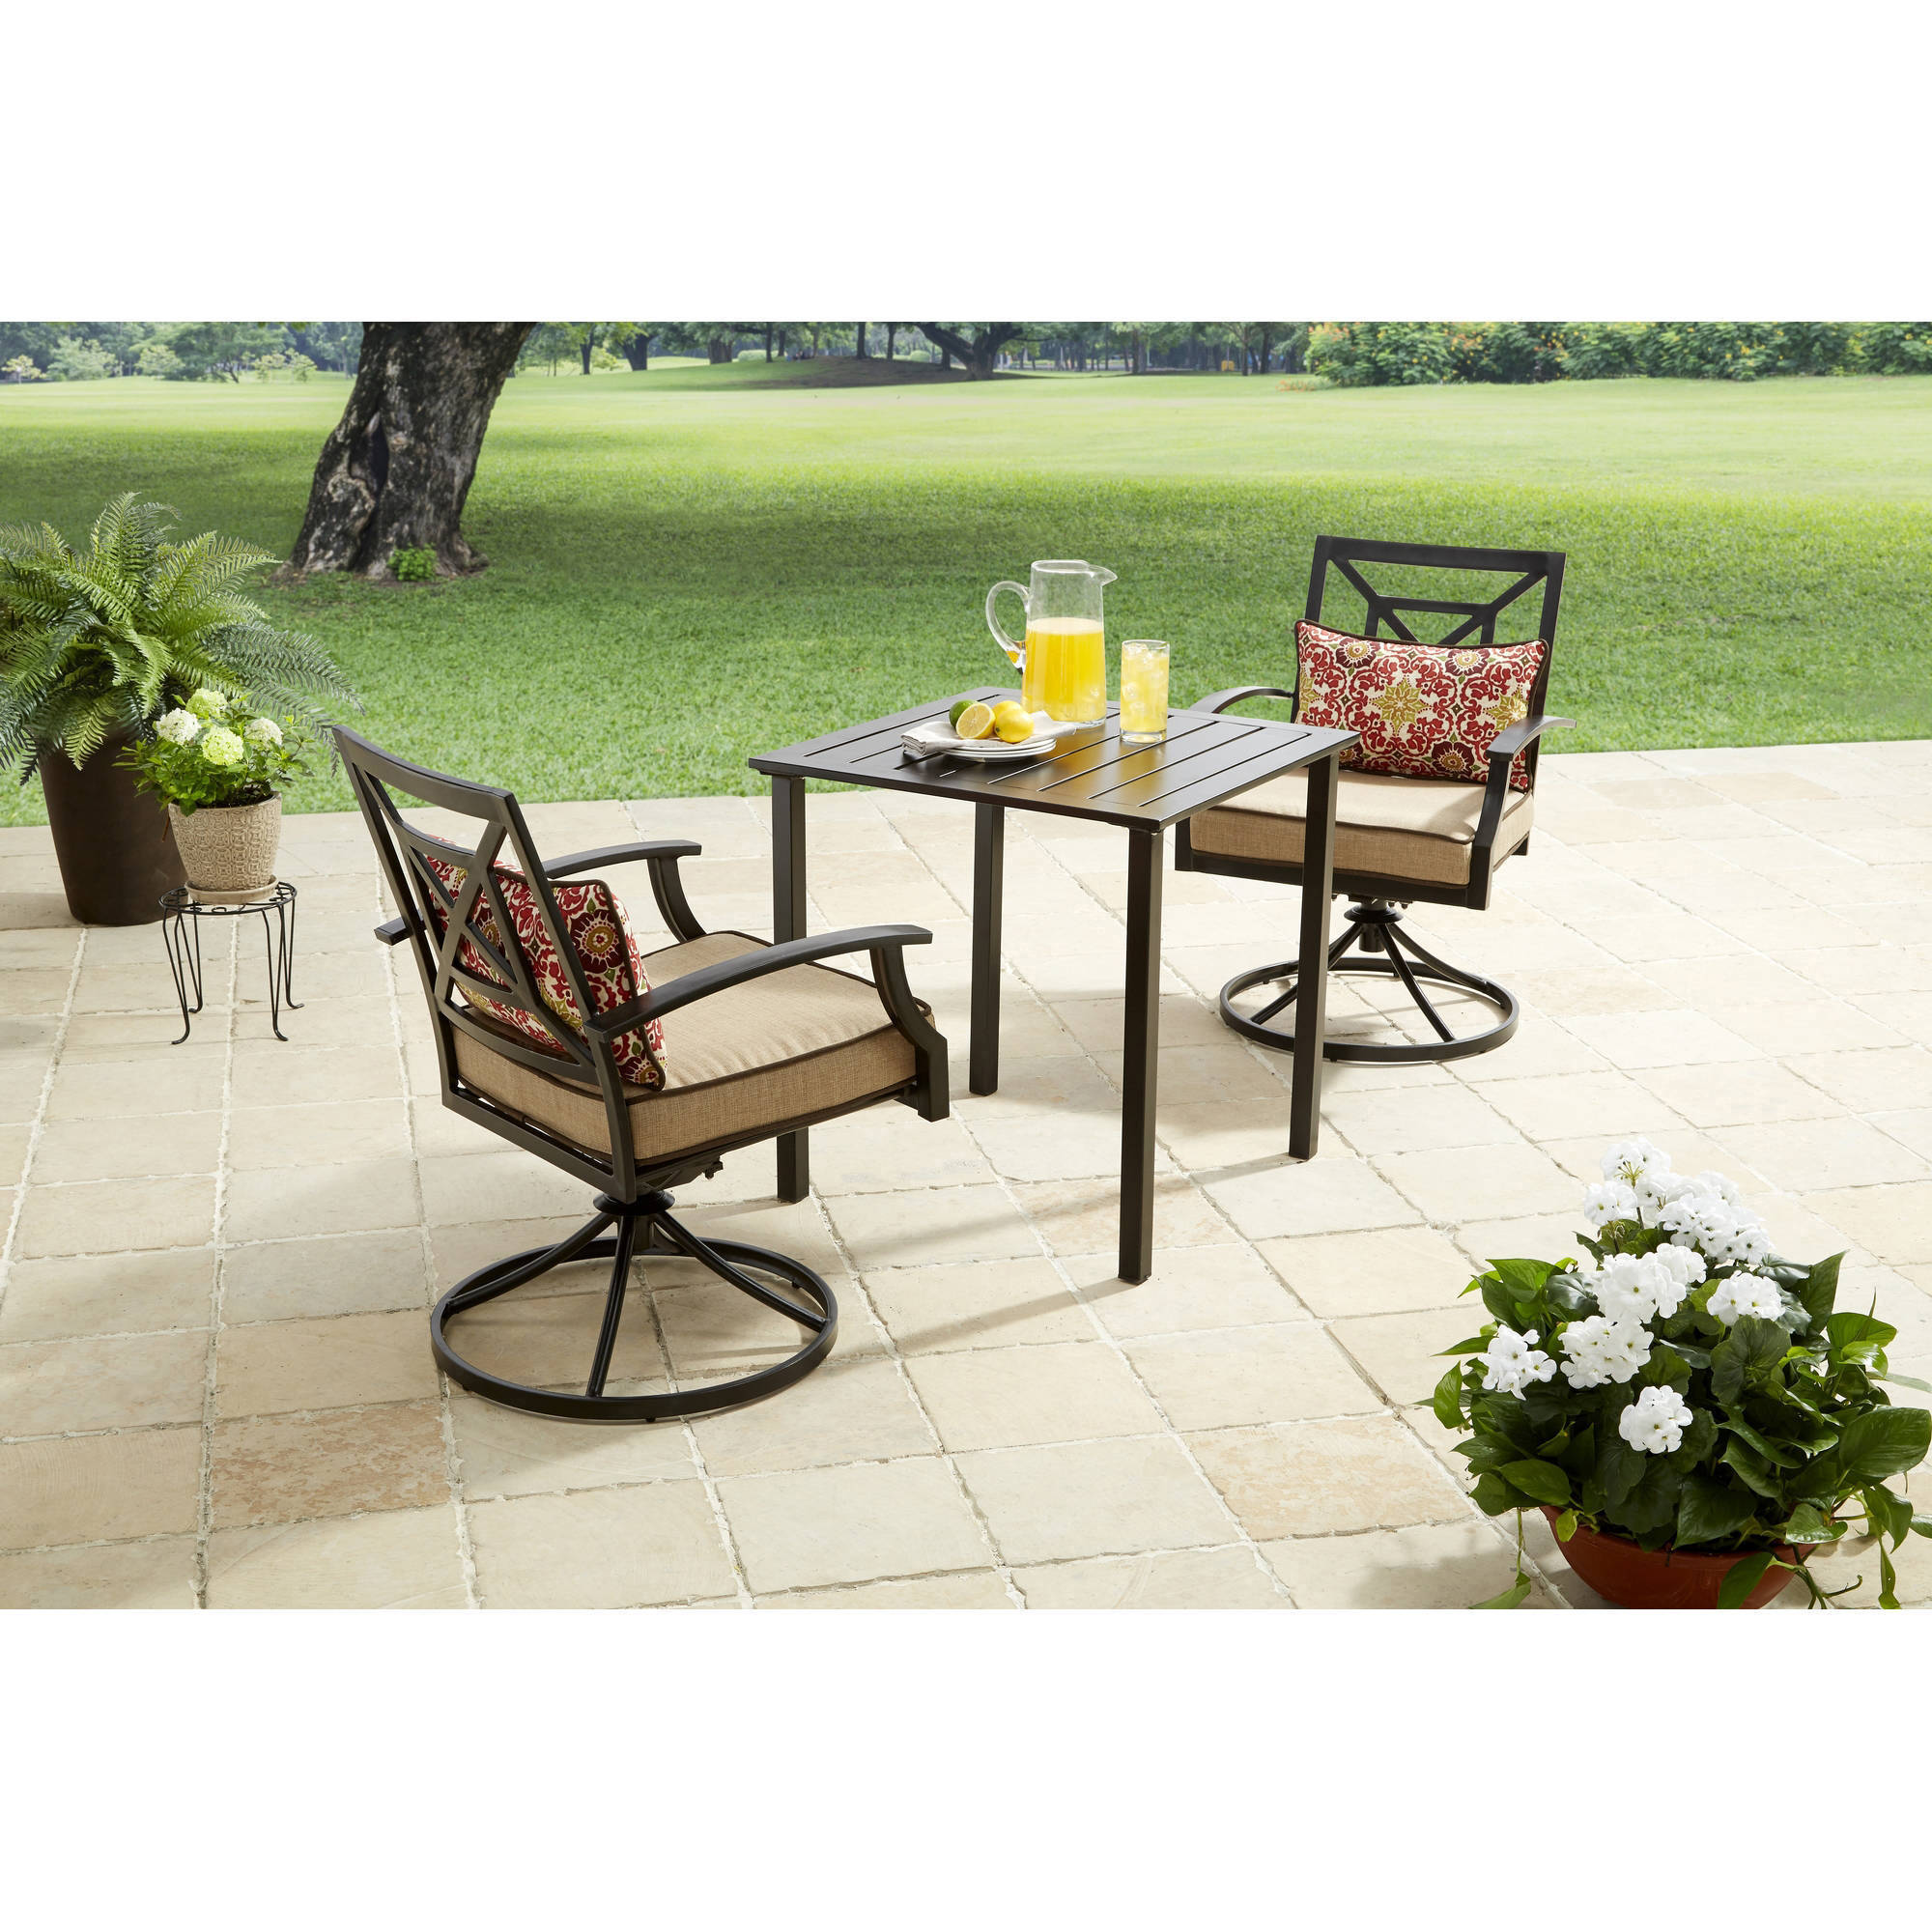 Better Homes and Gardens Carter Hills 3-Piece Outdoor Bistro Set, Seats 2 by